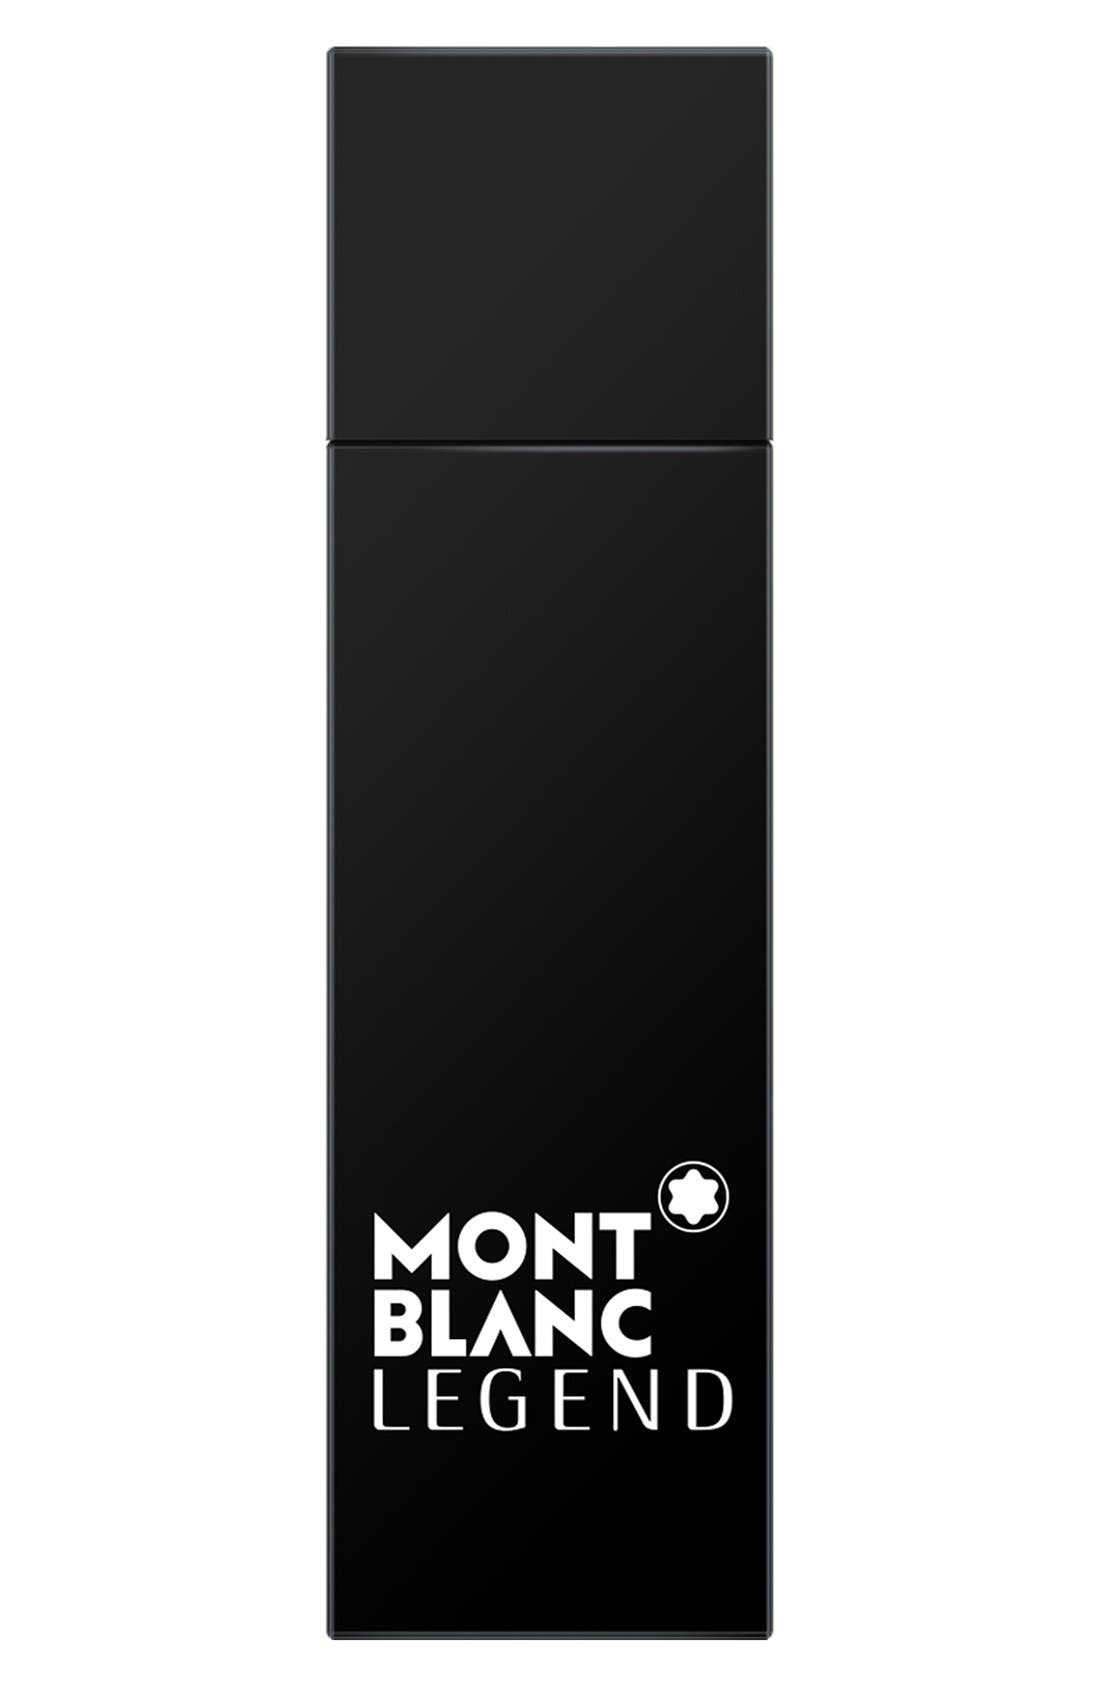 MONTBLANC 'Legend' Eau de Toilette Travel Spray